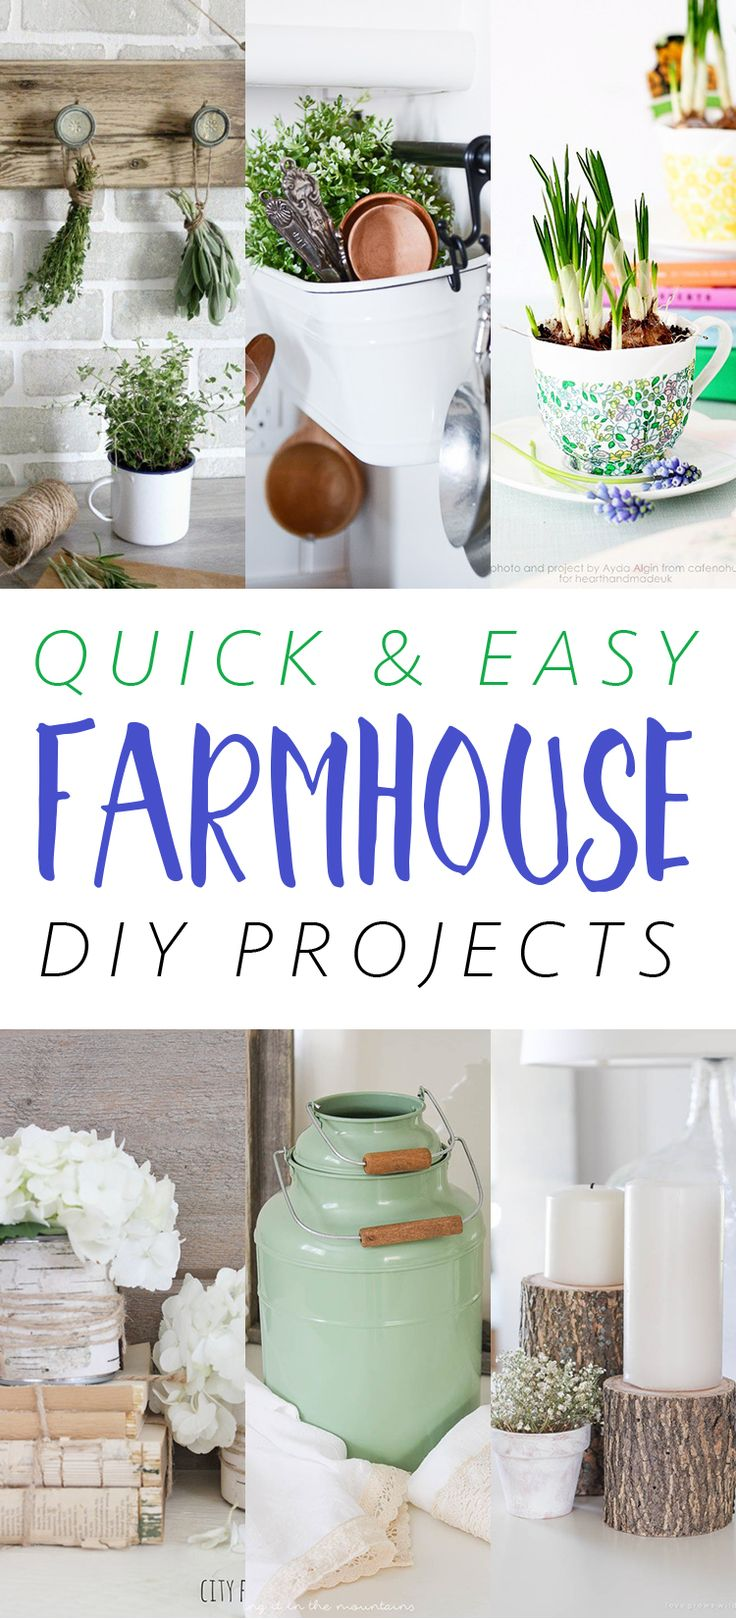 Quick and Easy Farmhouse DIY Projects DIY Ideas Home